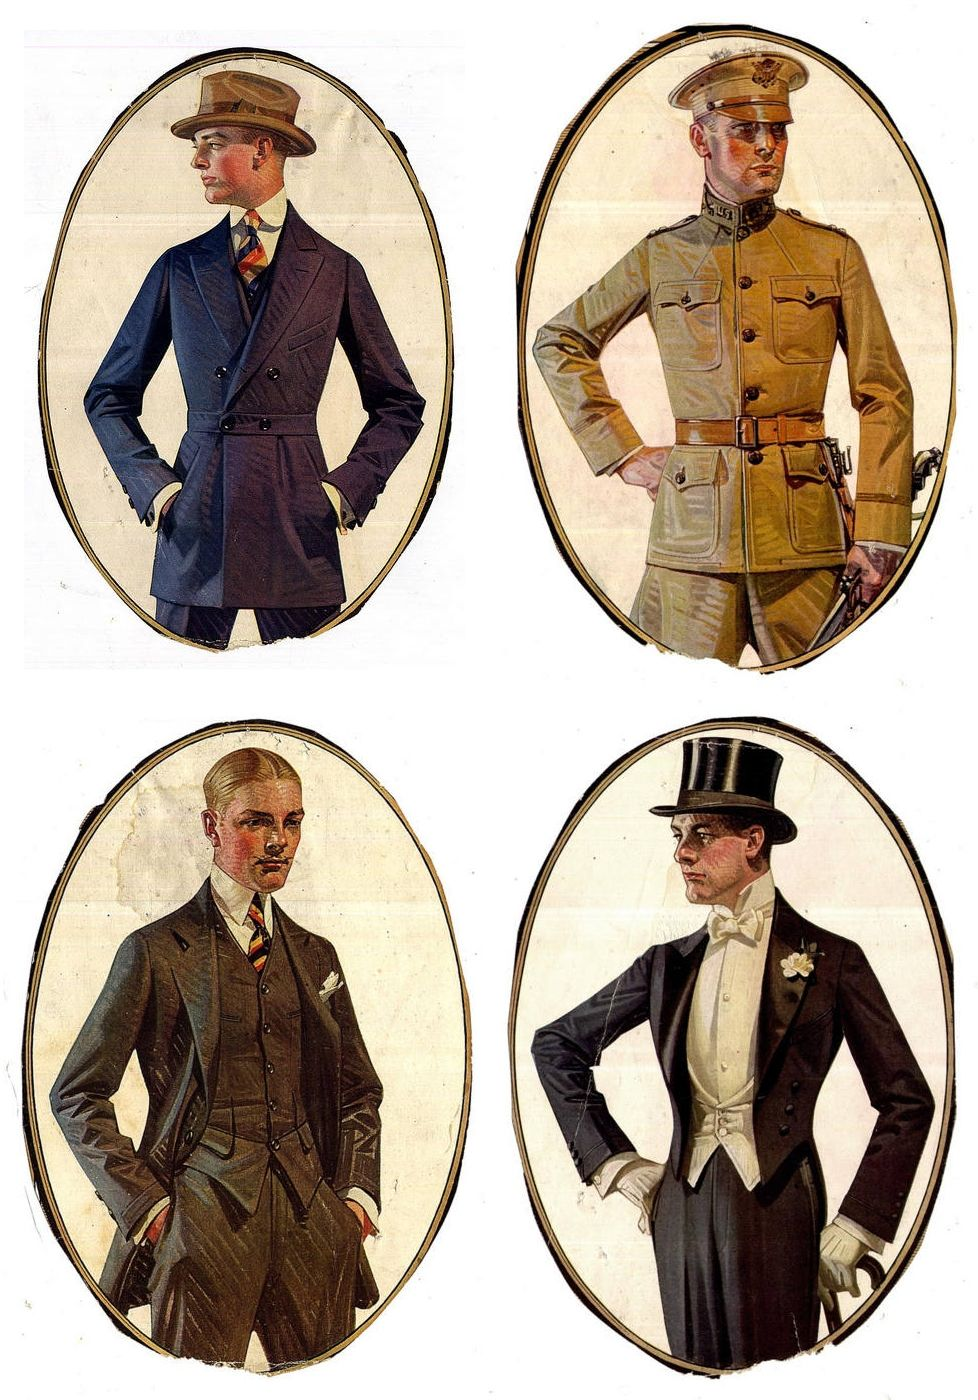 Gentlemen by JC Leyendecker